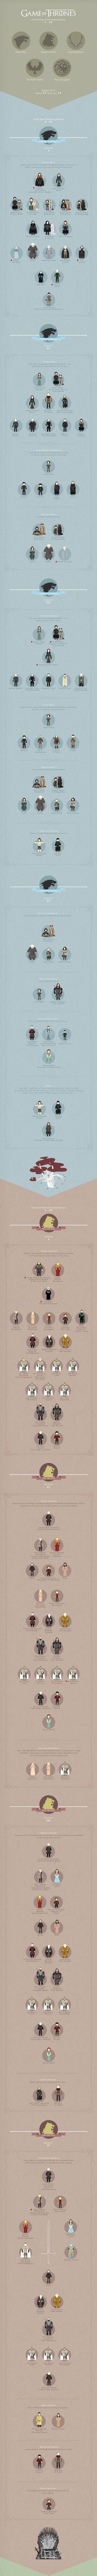 The Game of Thrones Infographic